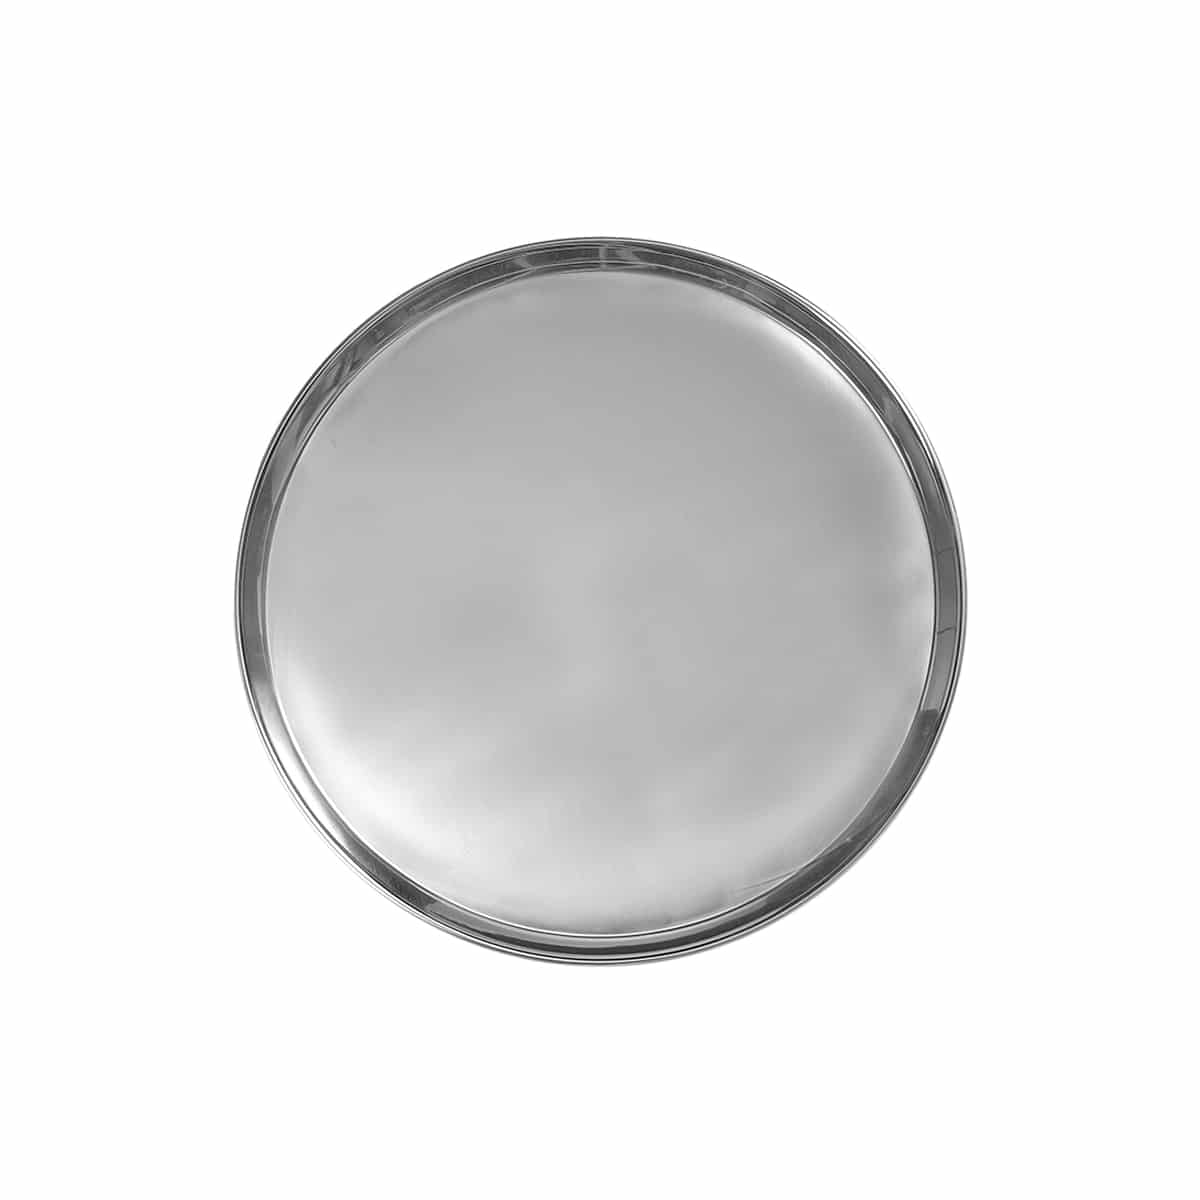 plateau tray round medium argent de jansen+co zeeloft